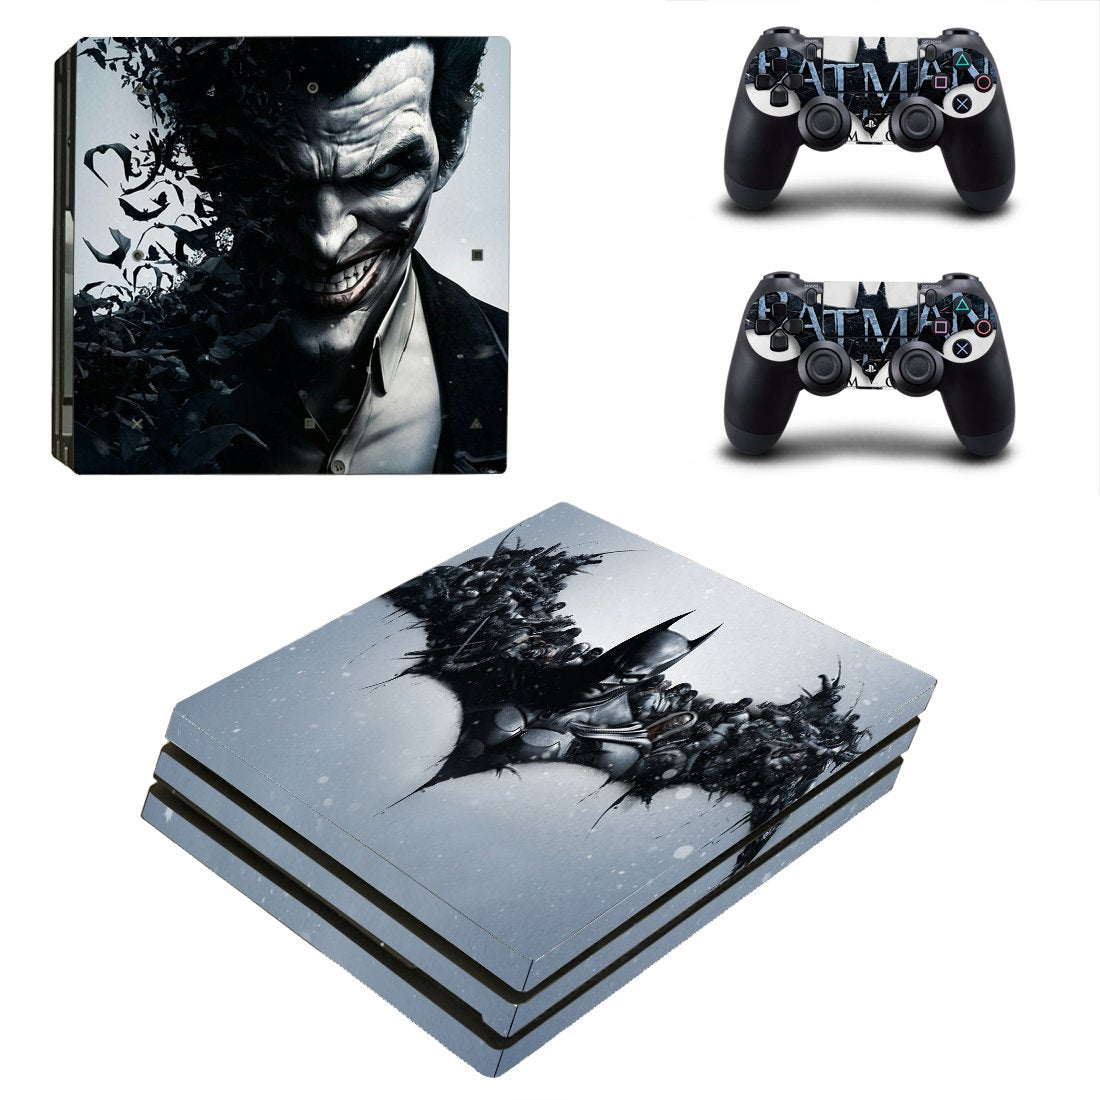 Batman PS4 Pro Skin Sticker Wrap